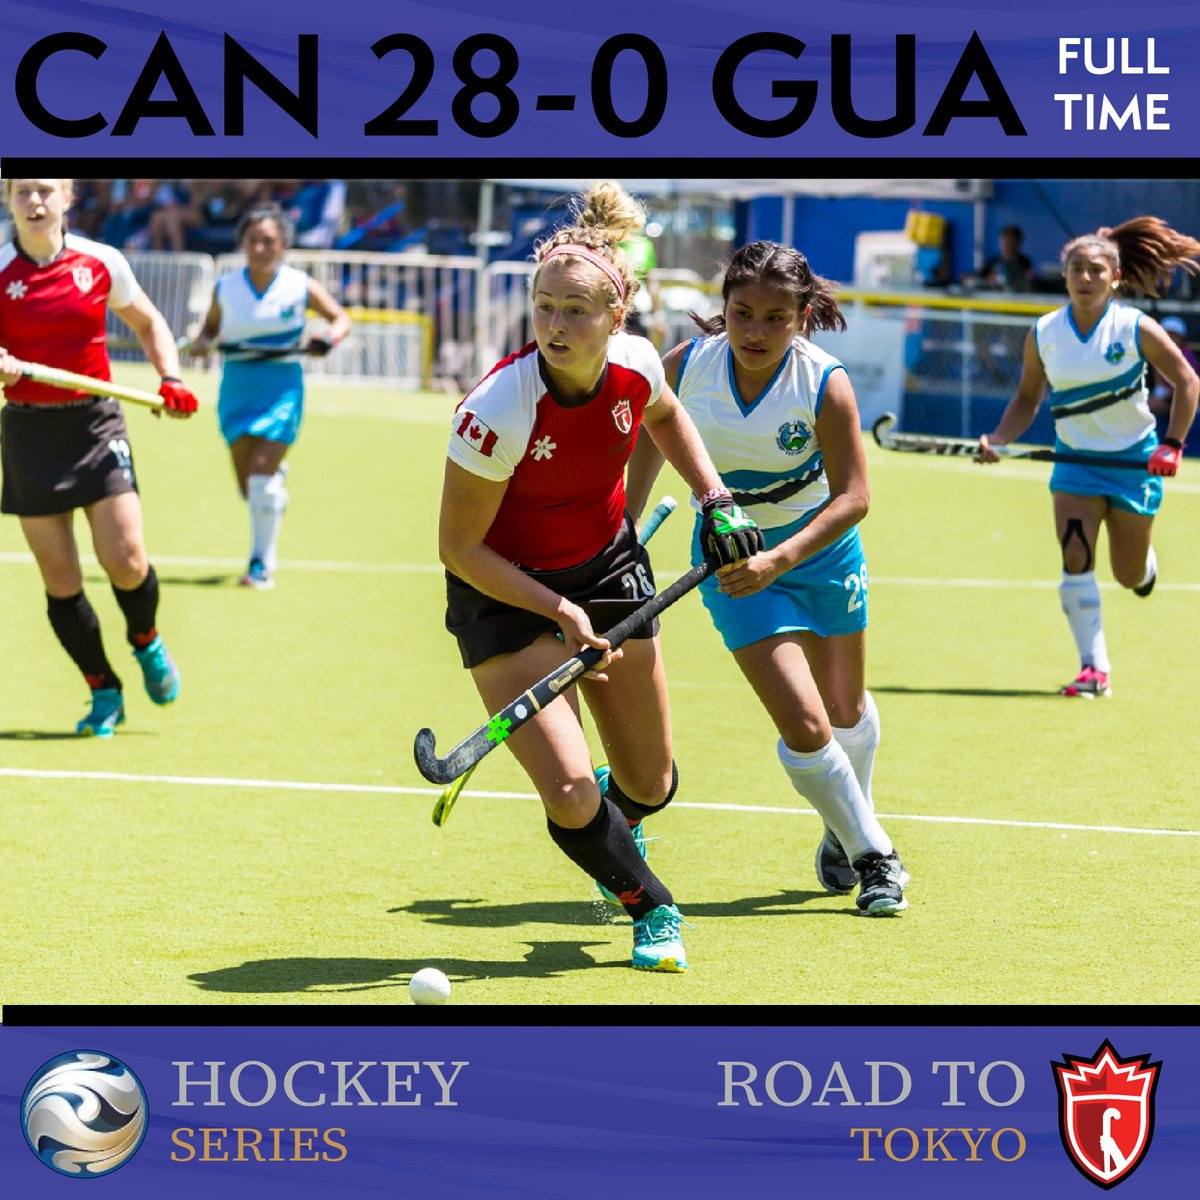 Canadian women begin Hockey Series with massive victory over Guatemala